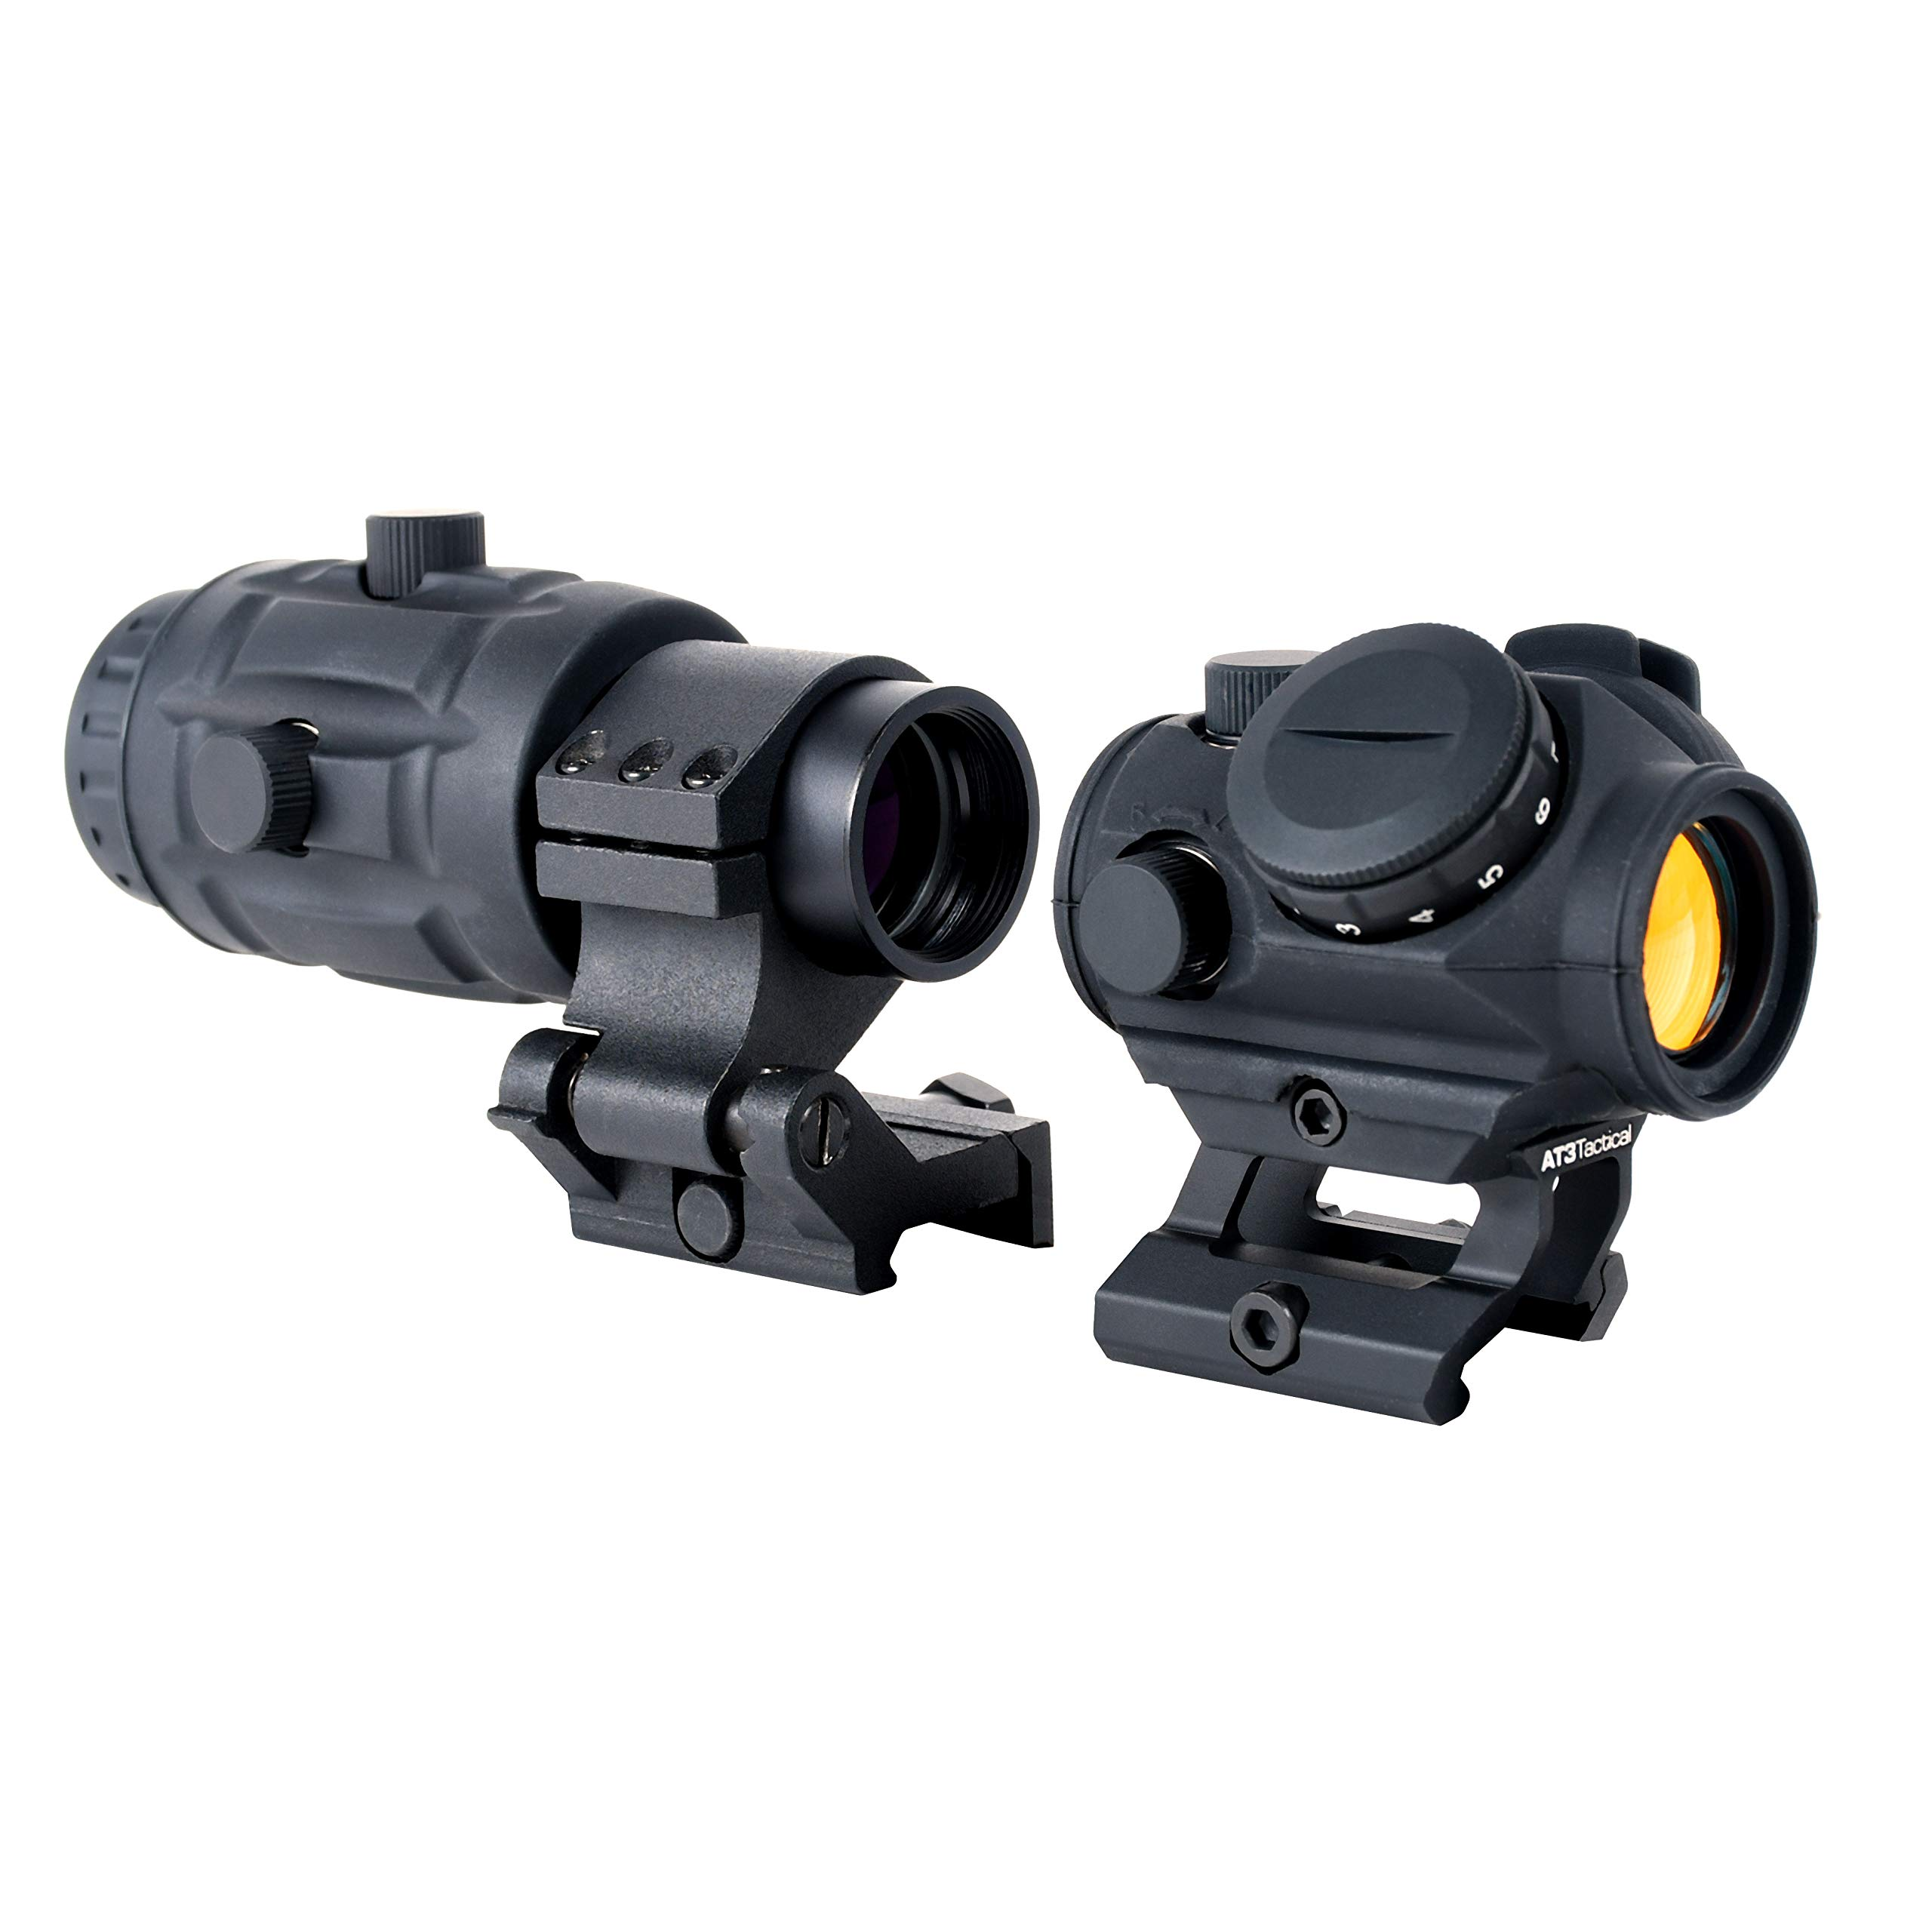 AT3 Tactical RD-50 Red Dot Sight + 3X RRDM Red Dot Magnifier Combo Kit by AT3 Tactical